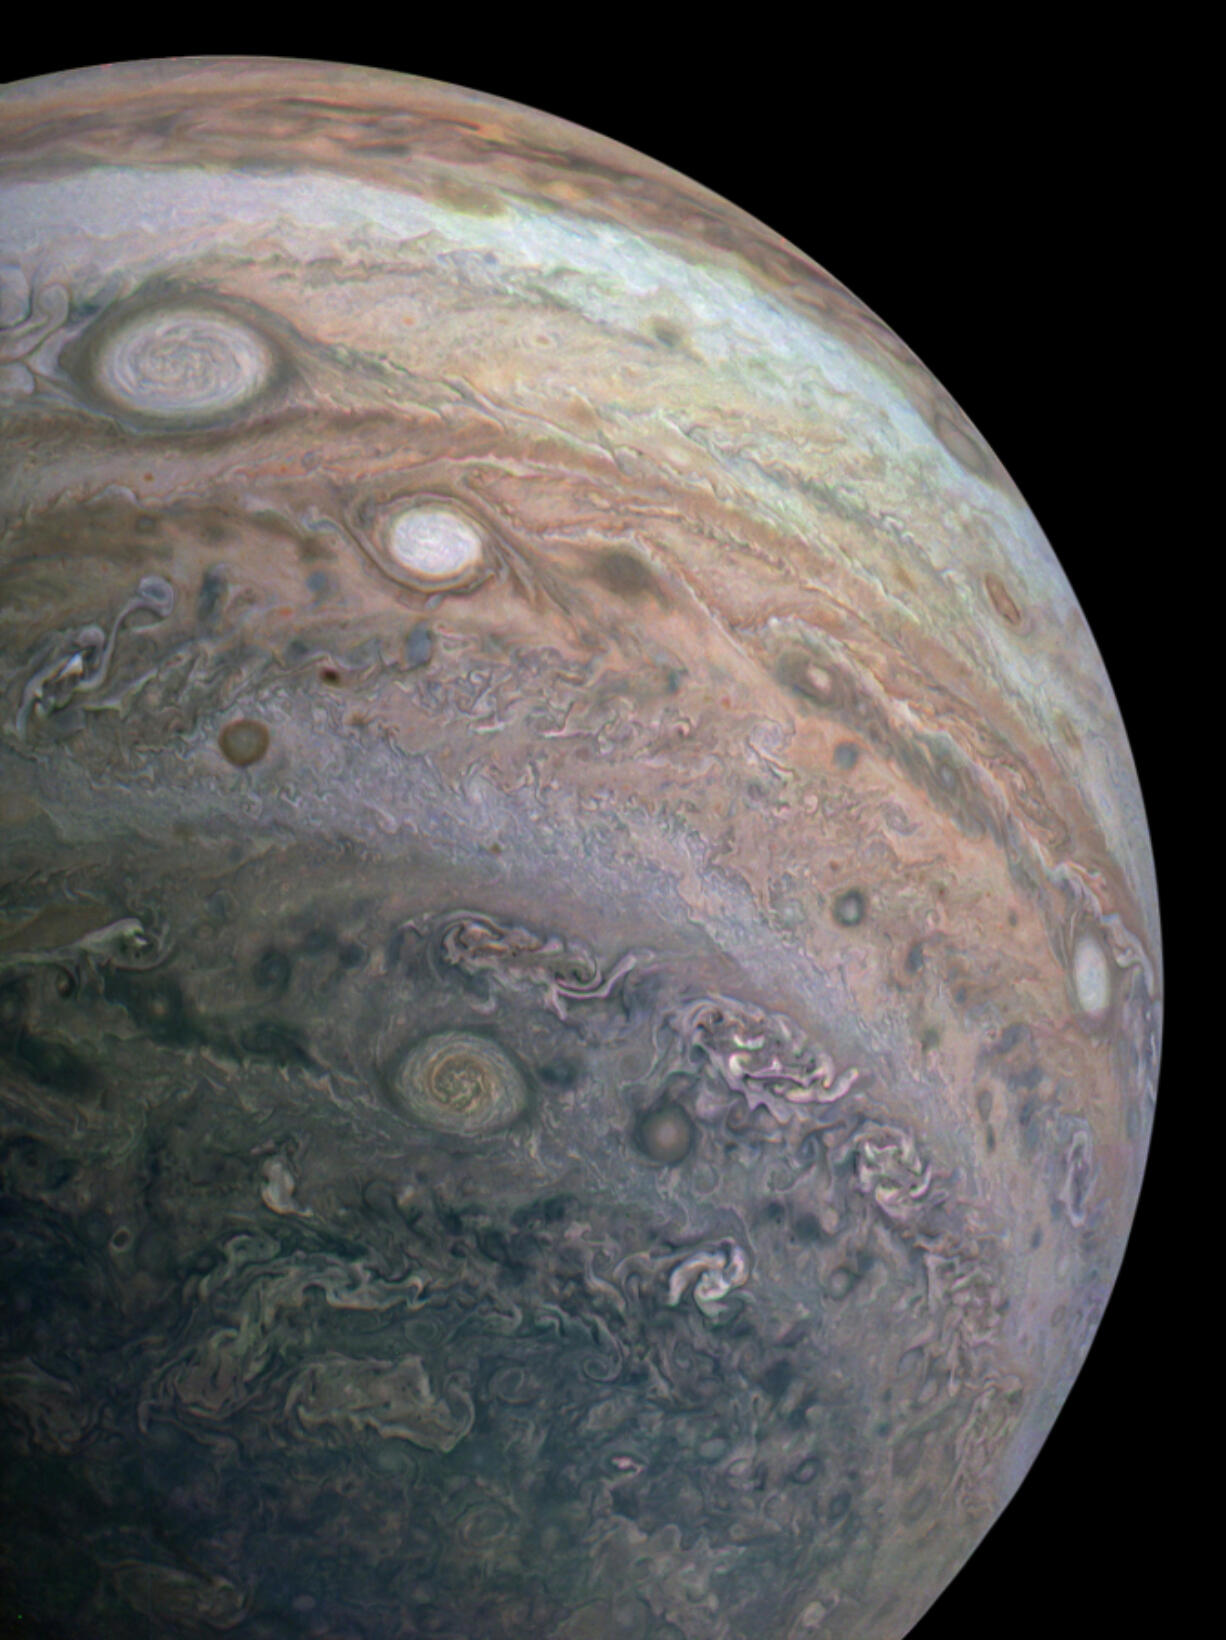 A Juno space probe passed below Jupiter and took this photograph of the giant planet's cloud bands on April 10, 2020.